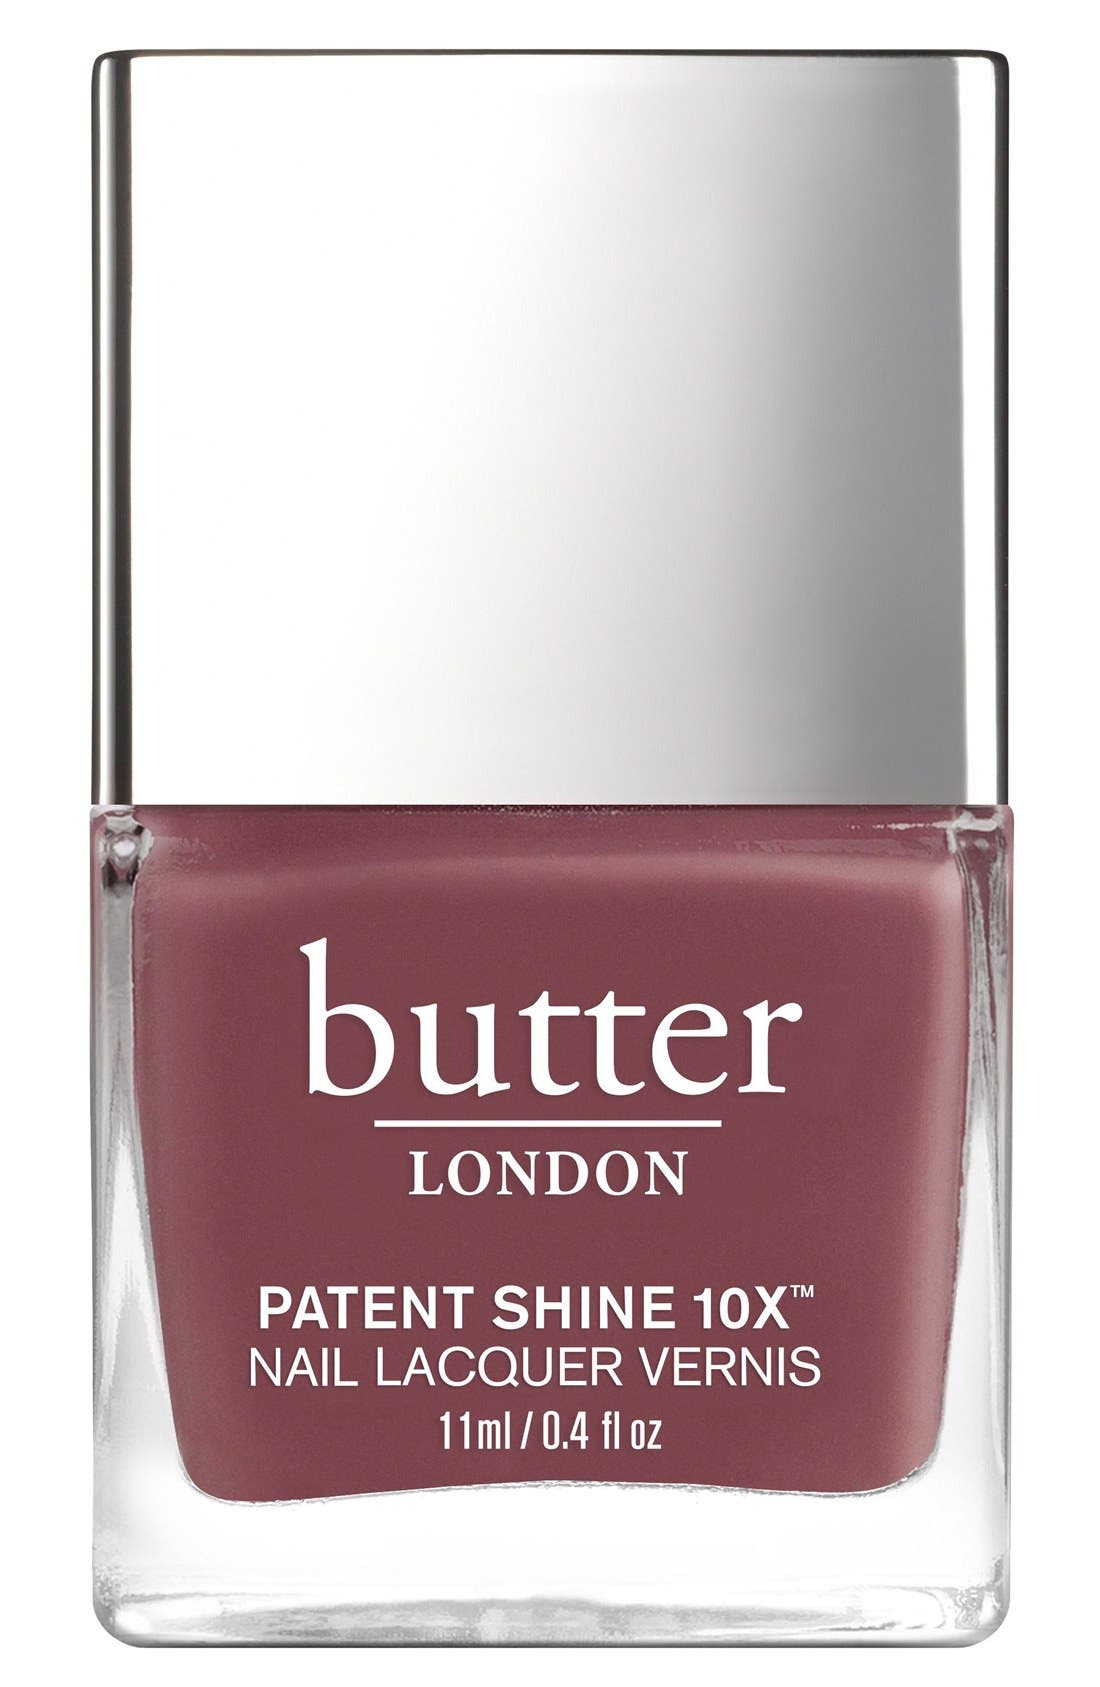 butter LONDON 'Patent Shine 10X®' Nail Lacquer